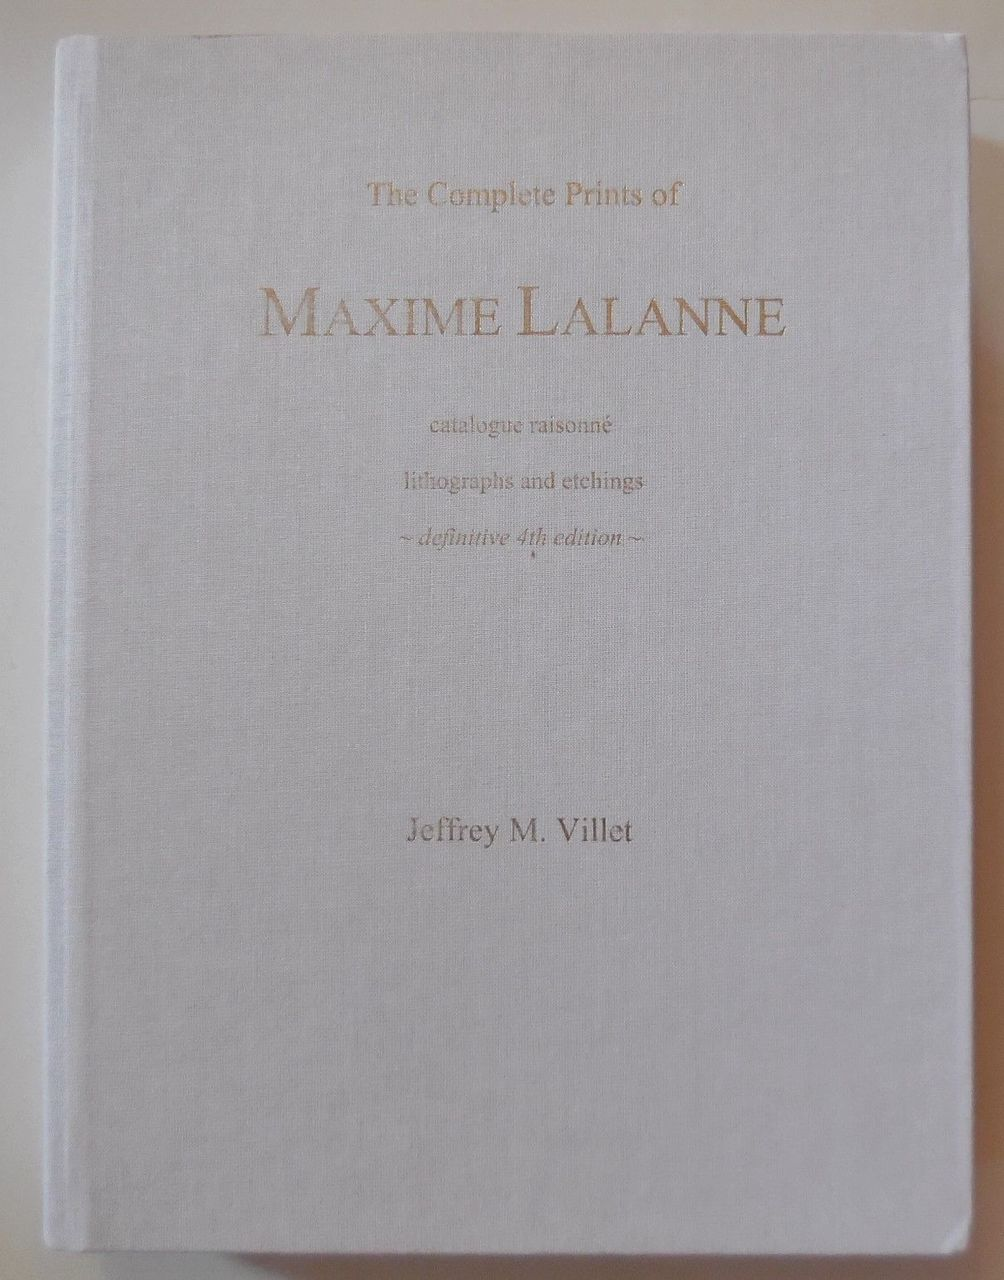 THE COMPLETE PRINTS OF MAXIME LALANNE: Catalogue Raisonne, Lithographs and Etchings - 2016 [Ltd Ed:300]